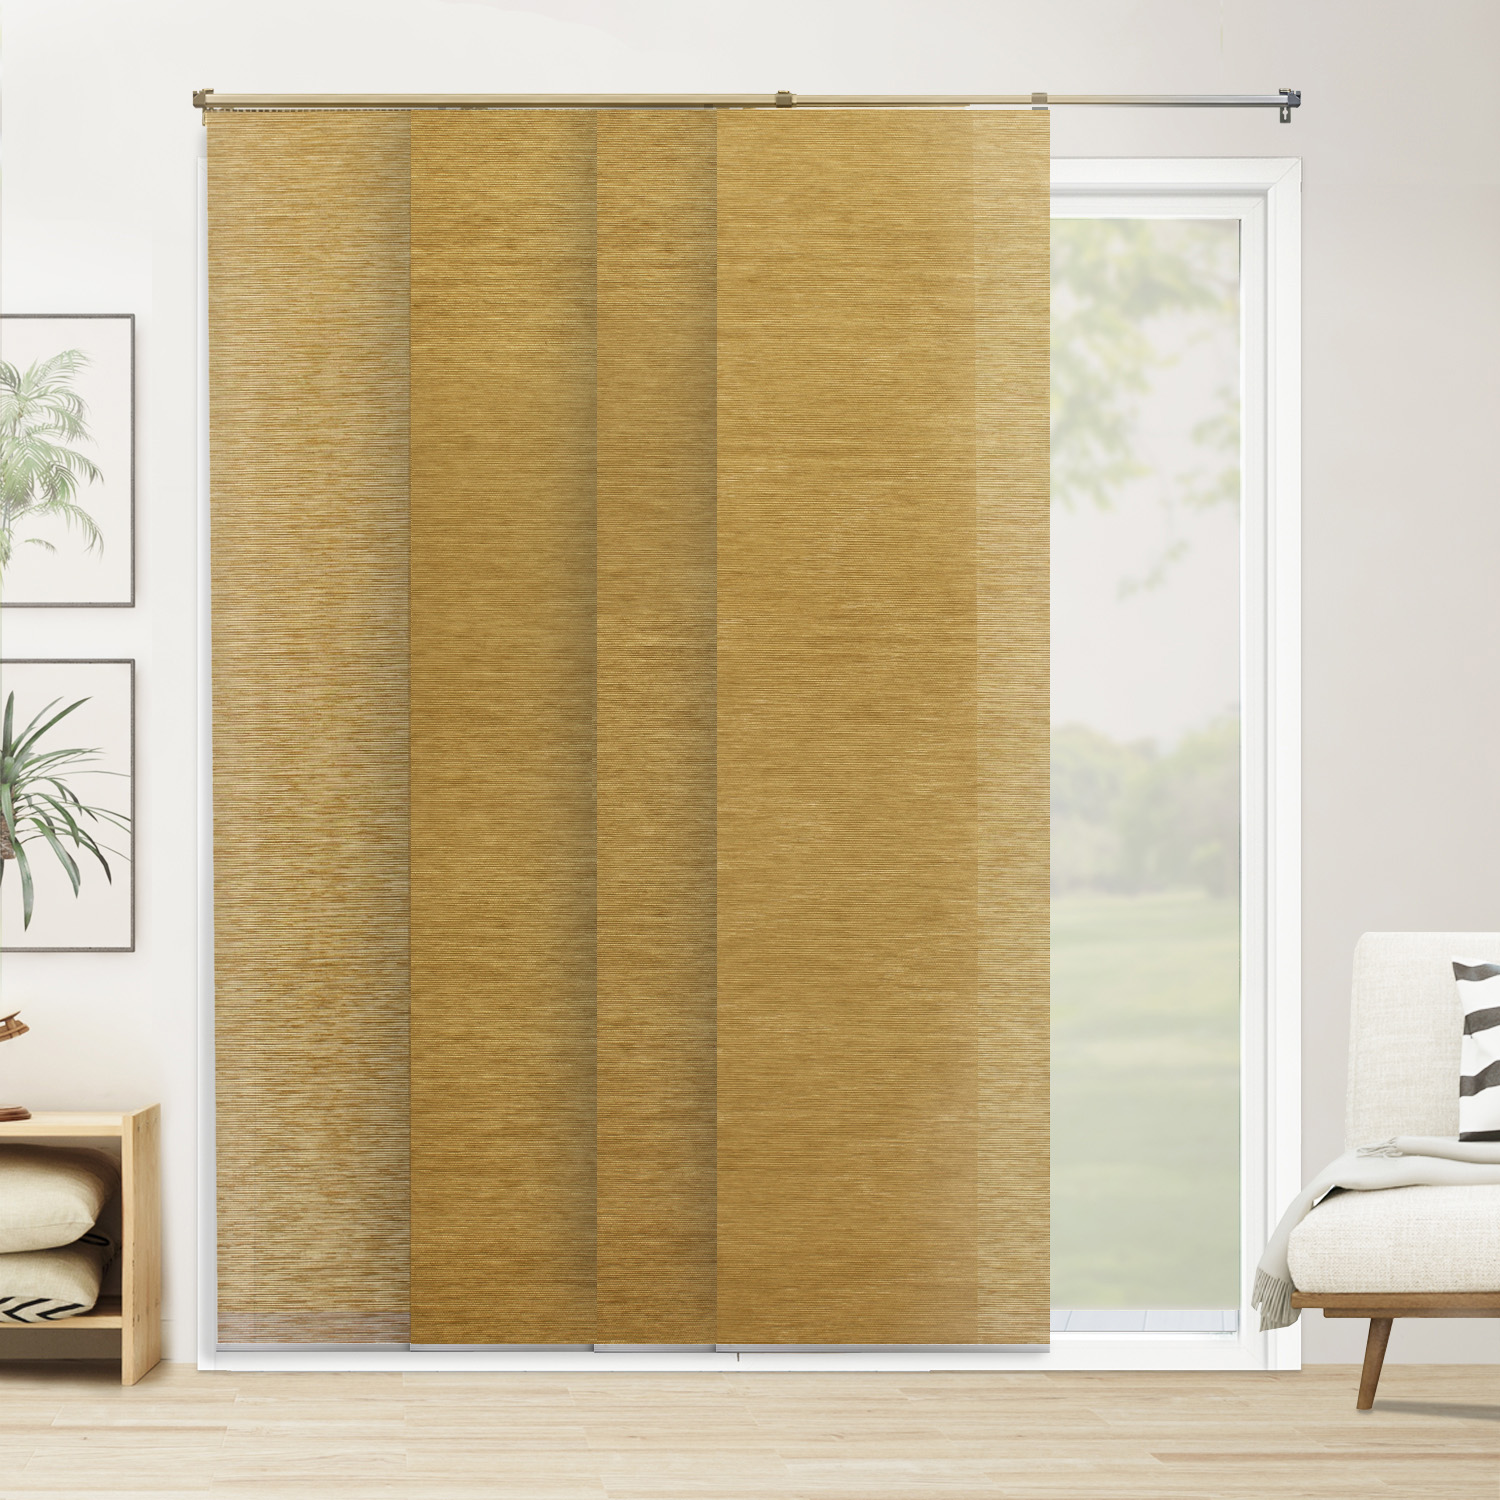 How To Pick The Right Blinds Or Shades For Your Door Chic Blog Home Page